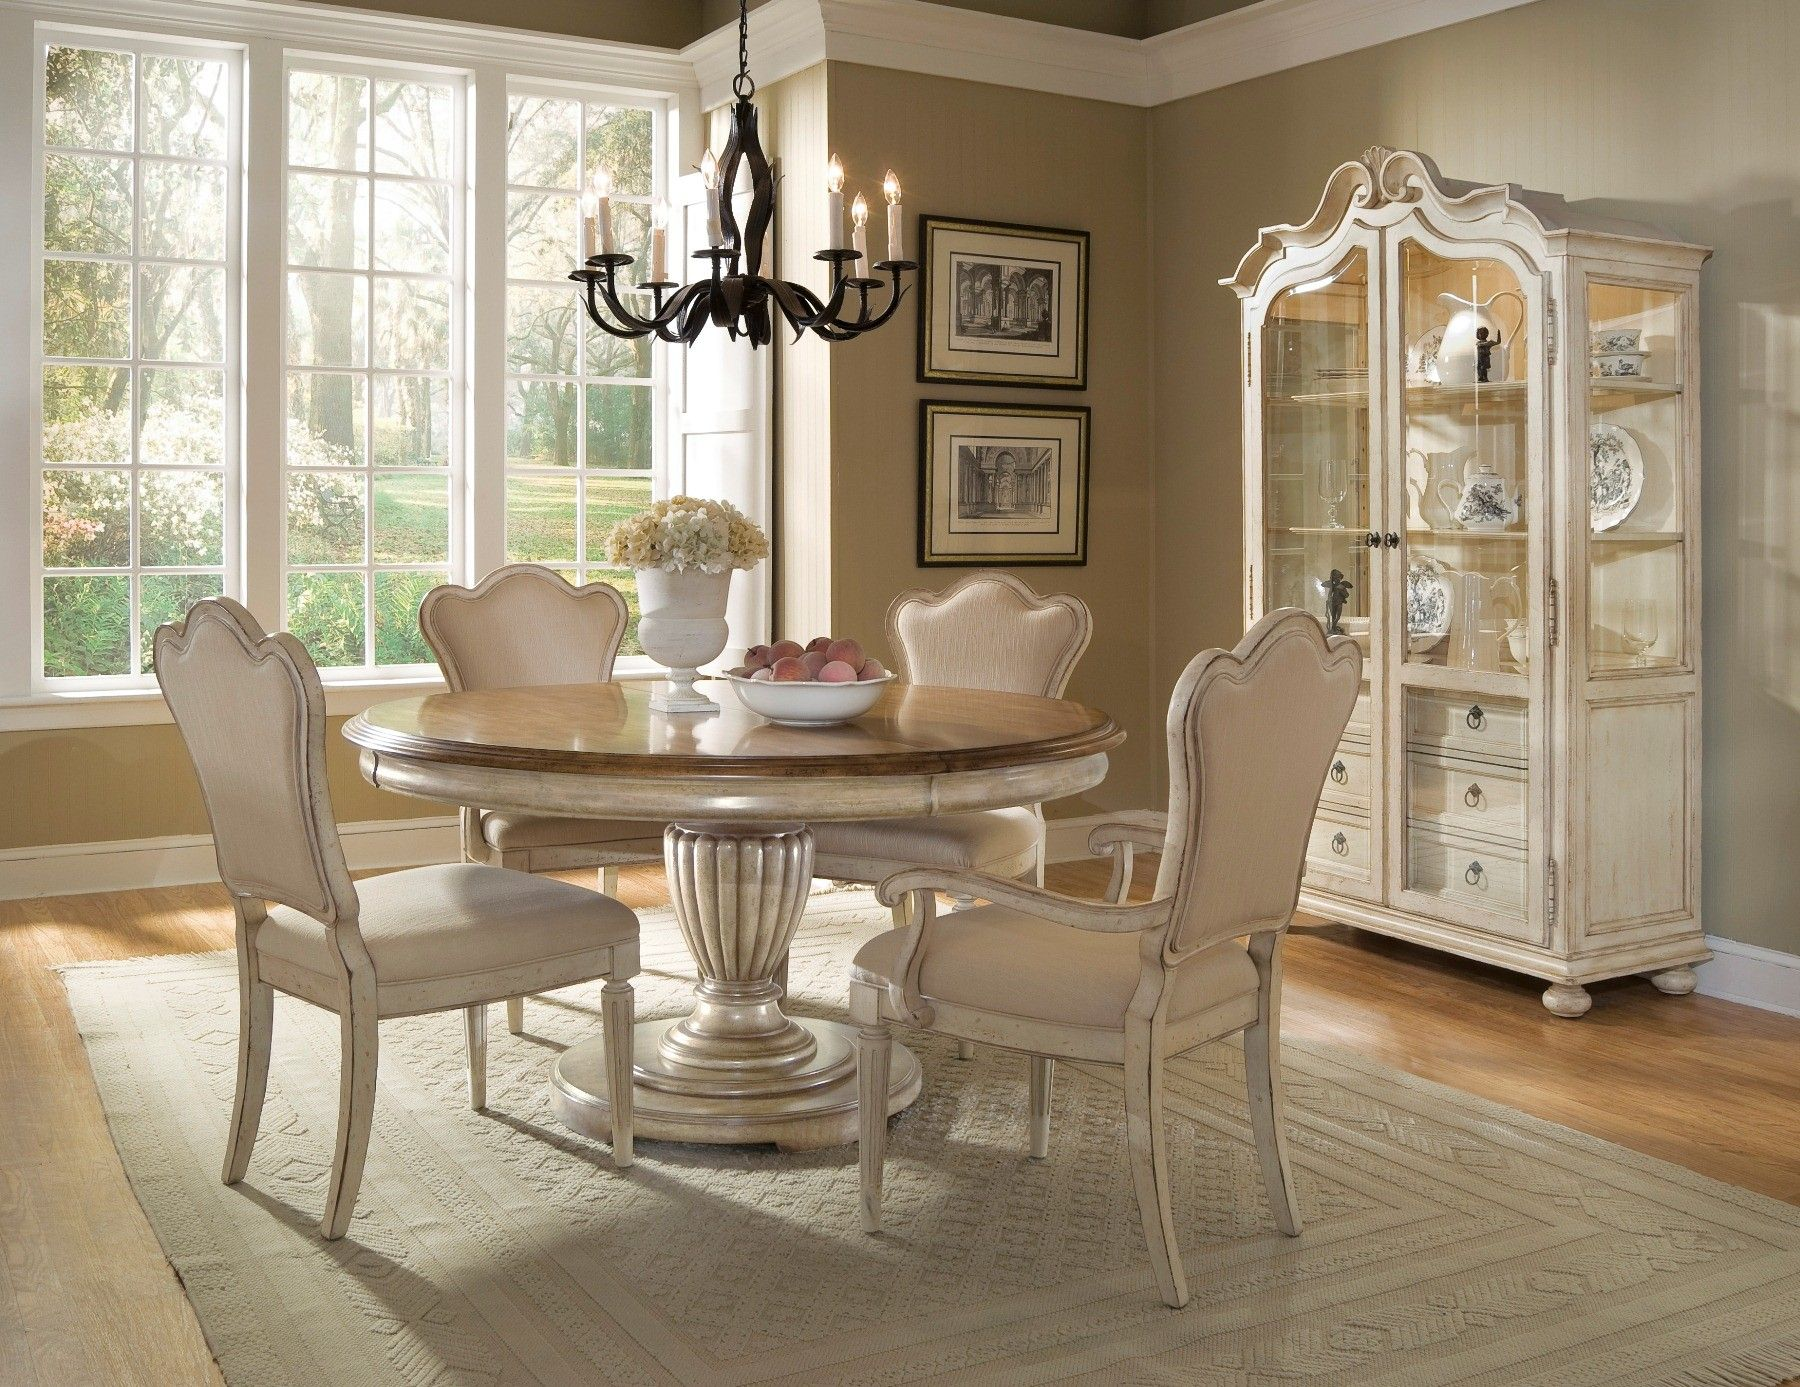 Upscale Dining Room Sets Luxury With Image Of Style At Ideas Marcela